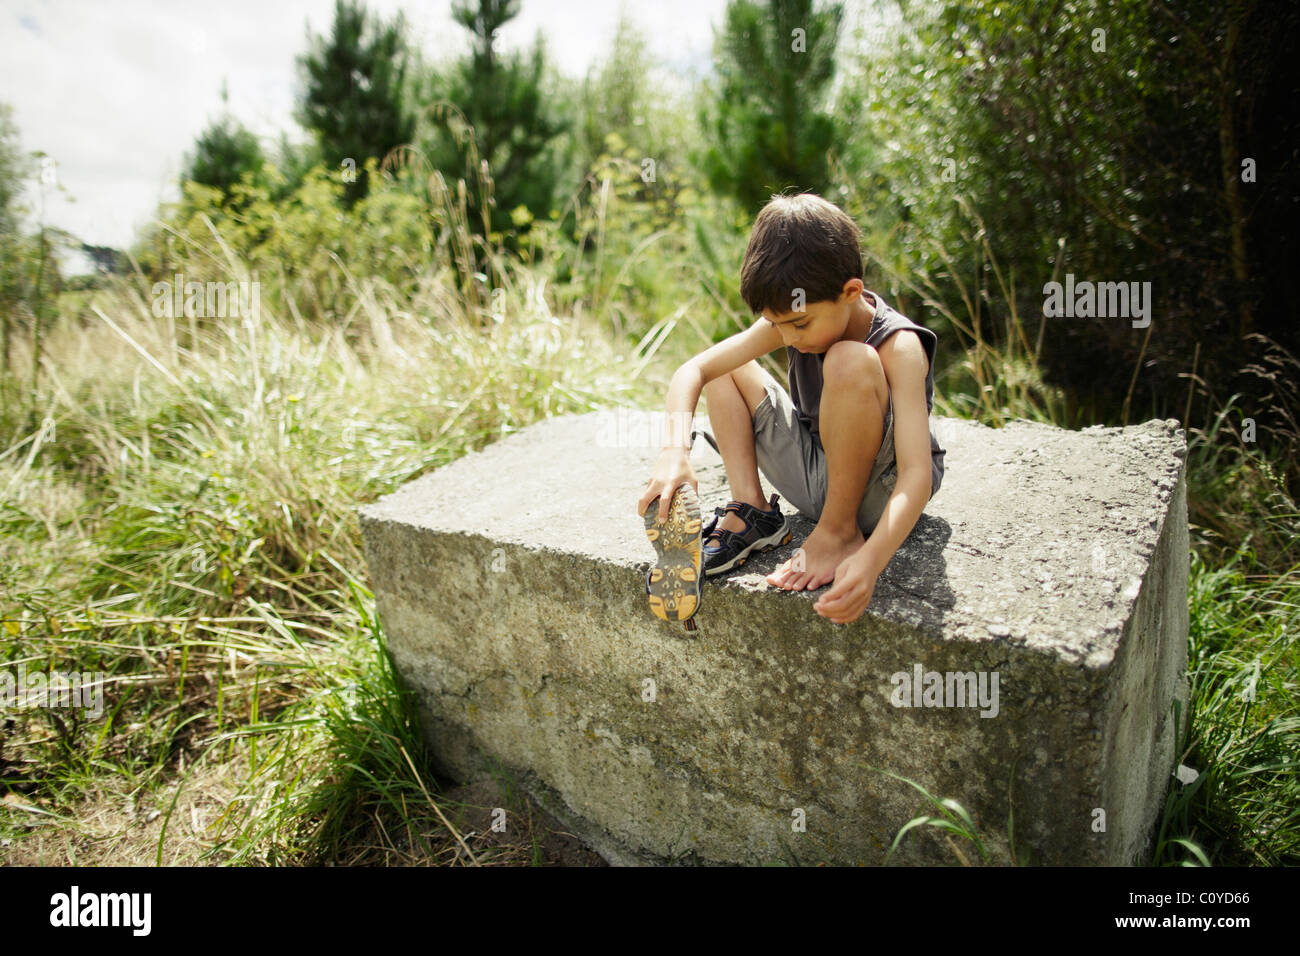 Boy sits on concrete block and gets stone out of shoe - Stock Image